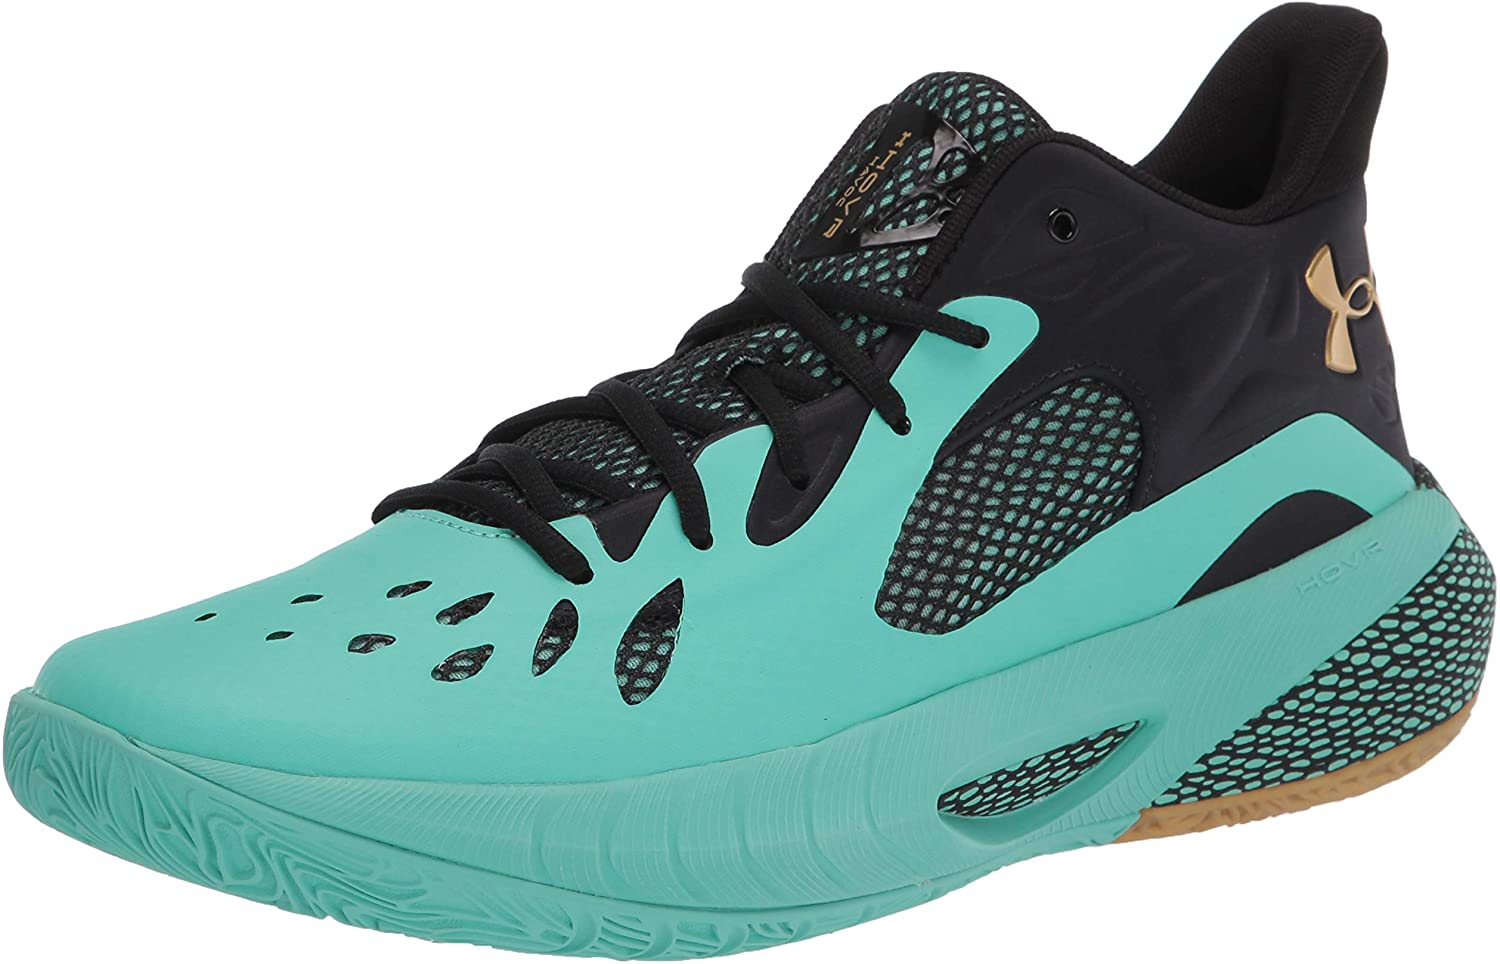 Under Armour Free shipping / New Unisex HOVR Havoc Credence Comet Shoe 3 Green Basketball